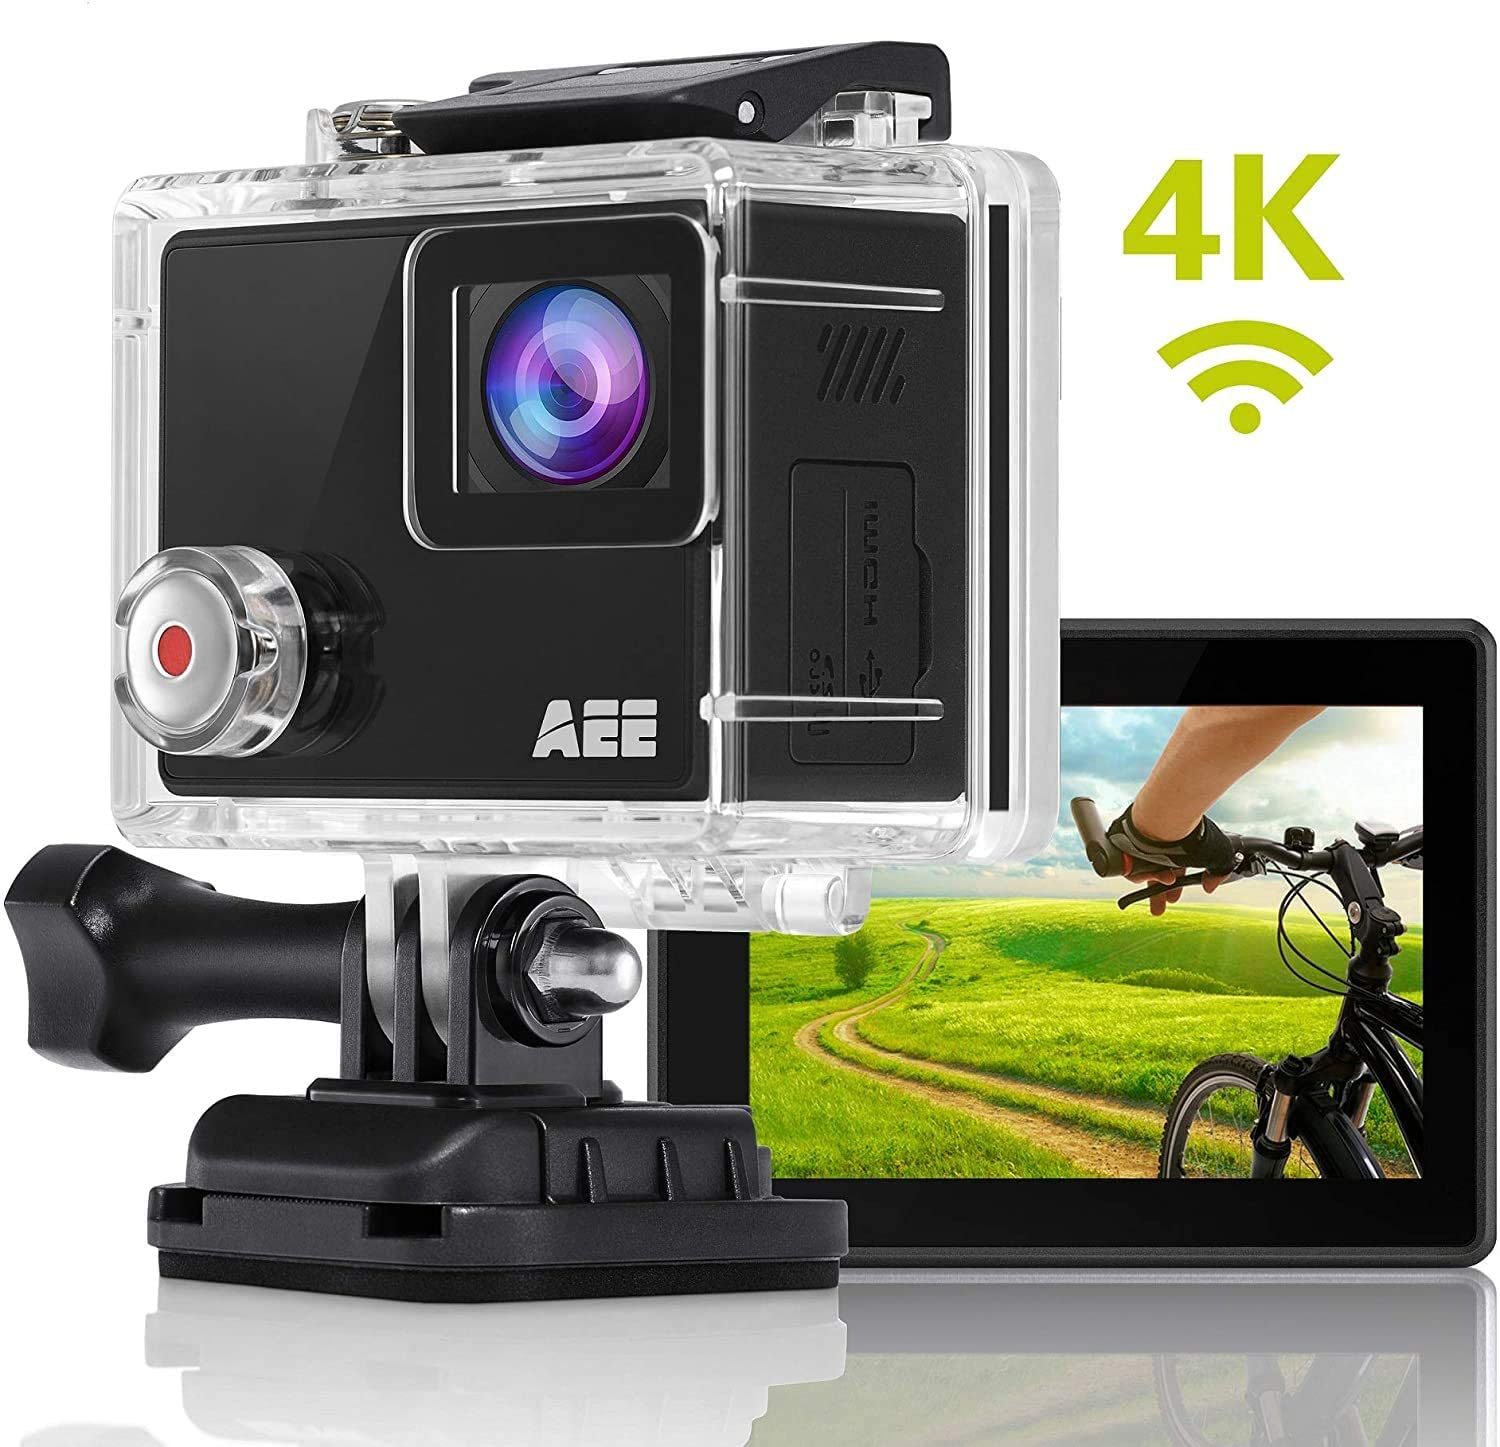 AEE Shadow Action Camera 4K 1080P HD 16MP with Touch Screen, 140° Wide Angle Lens with 4X Digital Zoom, 40m Portable Underwater Waterproof Sports Camera, 64GB Storage and Mounting Accessories Kit